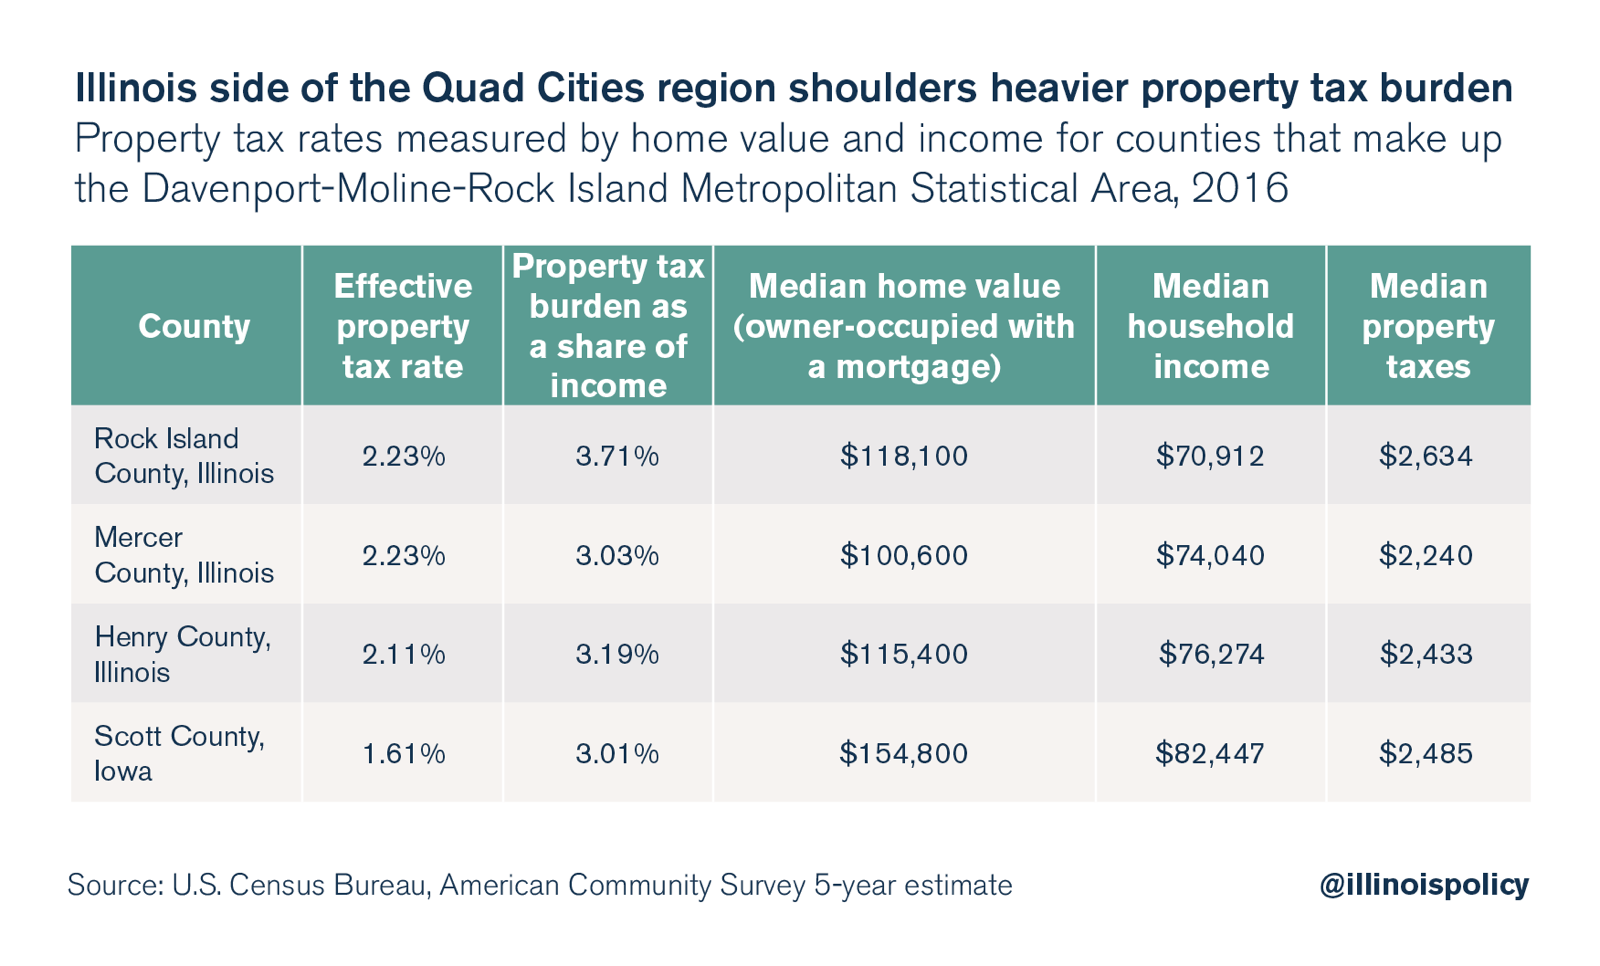 Illinois side of Quad Cities region shoulders heavier property tax burden